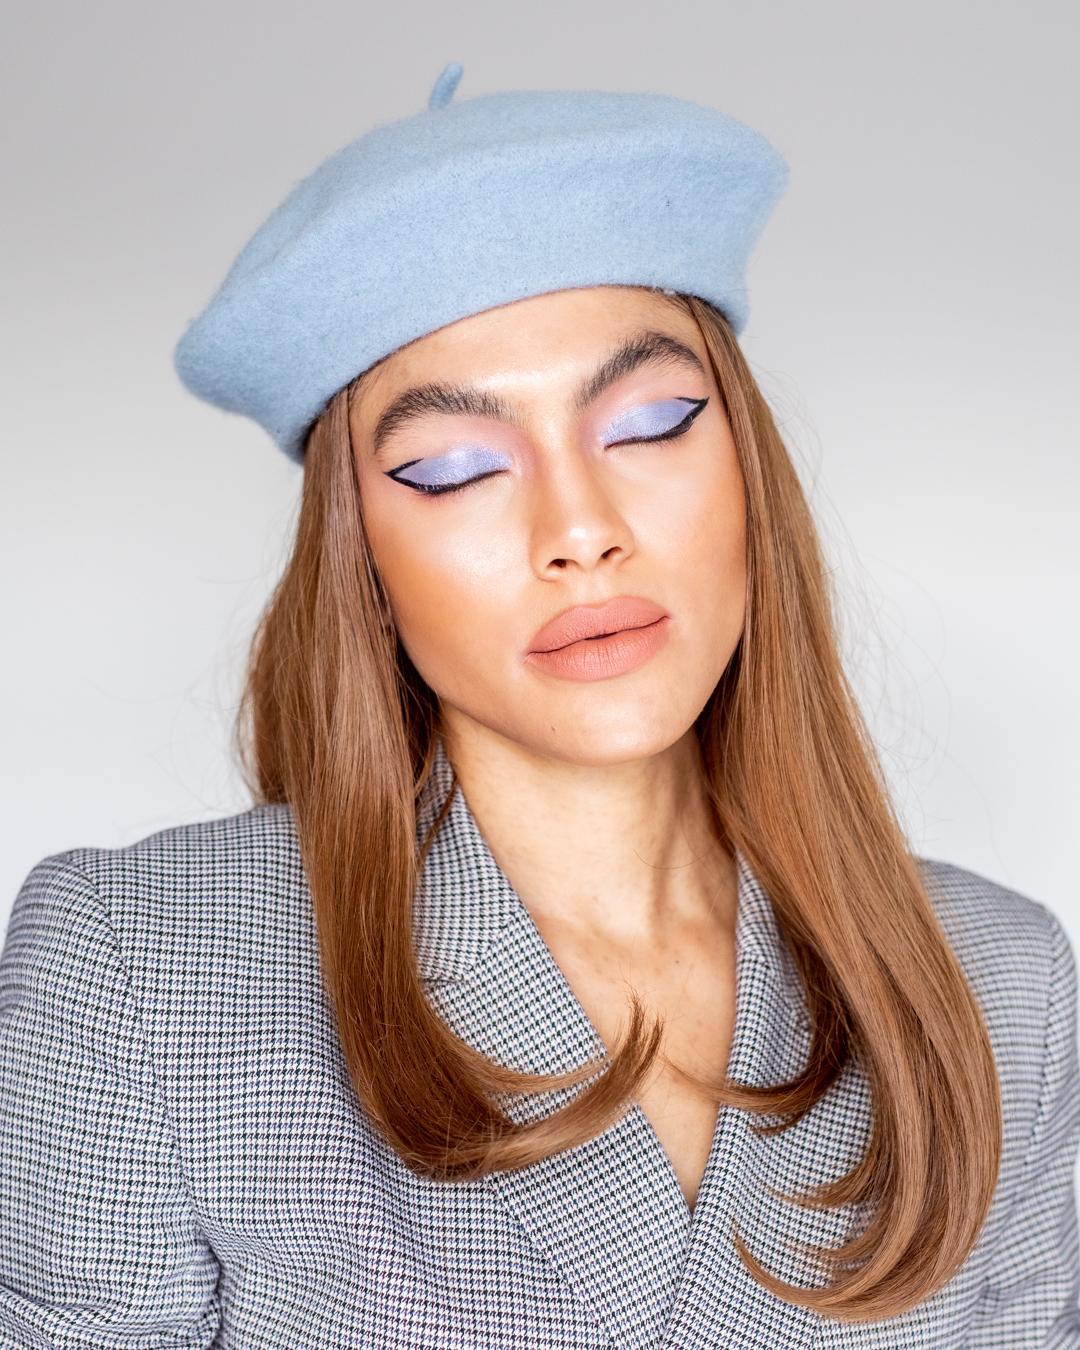 Samio 60s makeup look Stila Suede Shade, shade Something Blue graphic liner